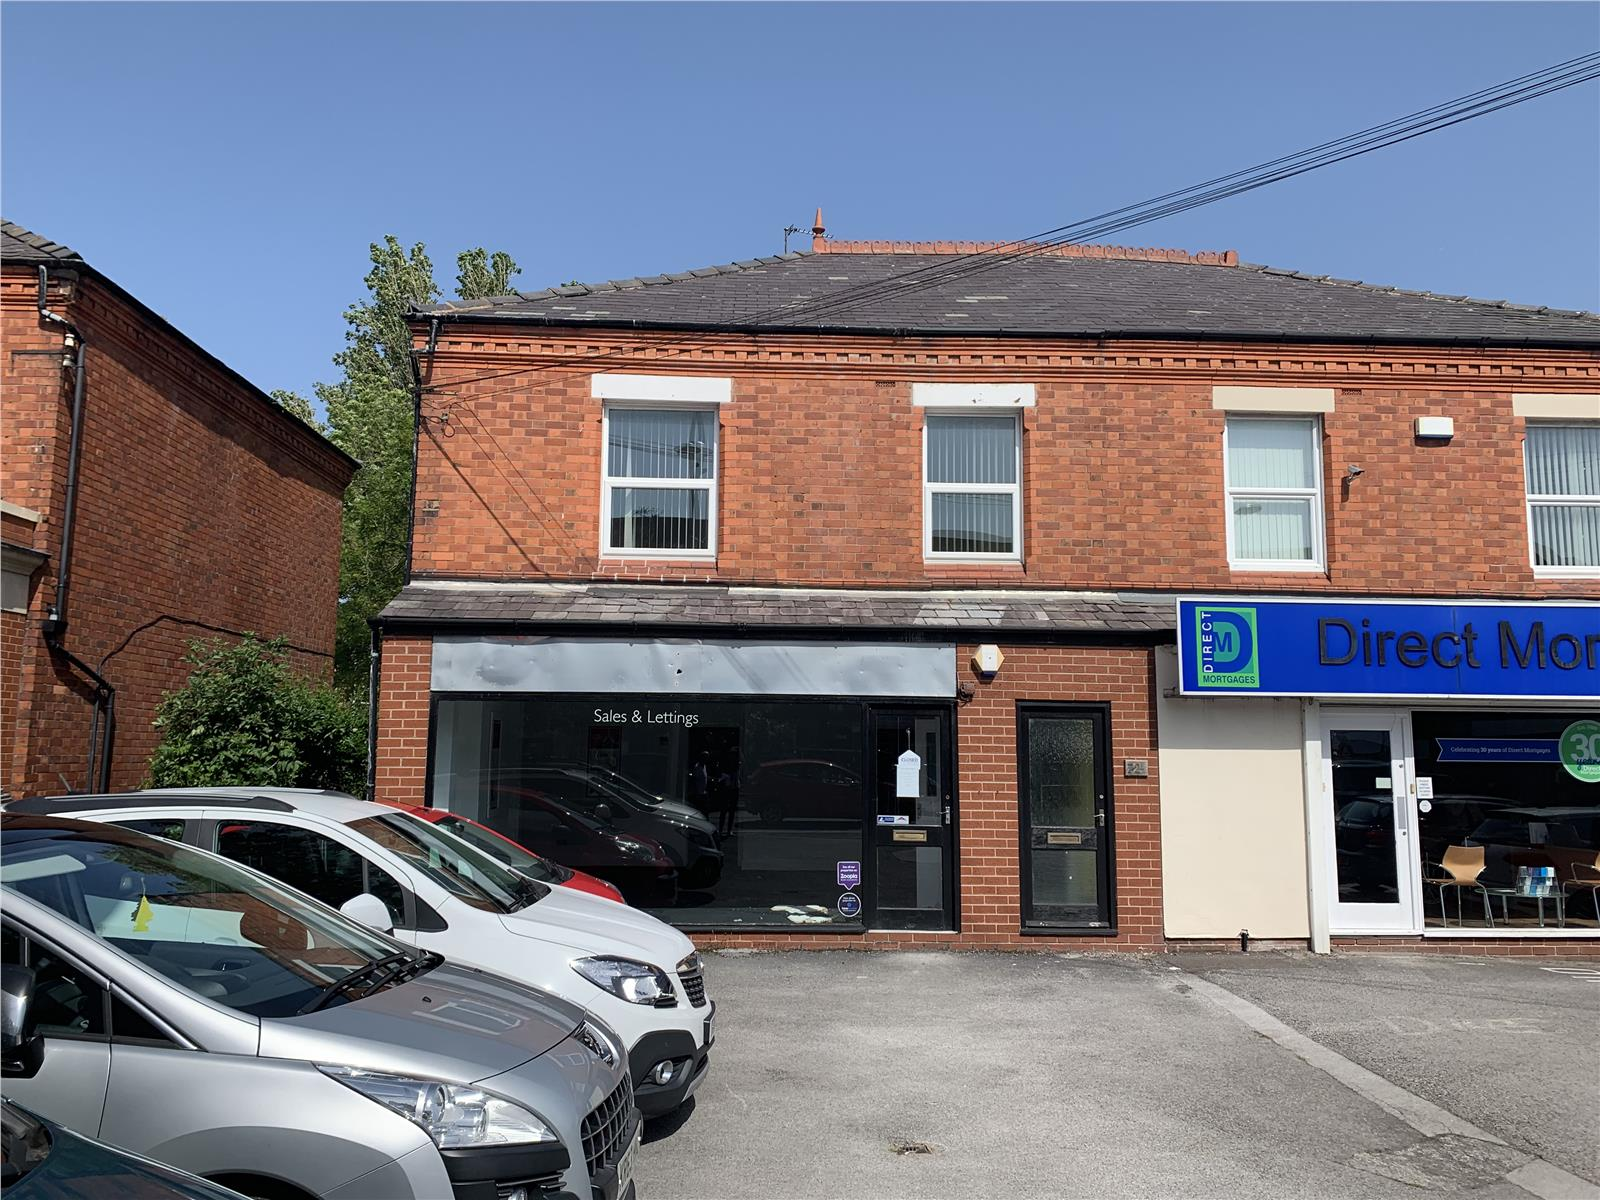 72 Whitby Road, Ellesmere Port, Cheshire, CH65